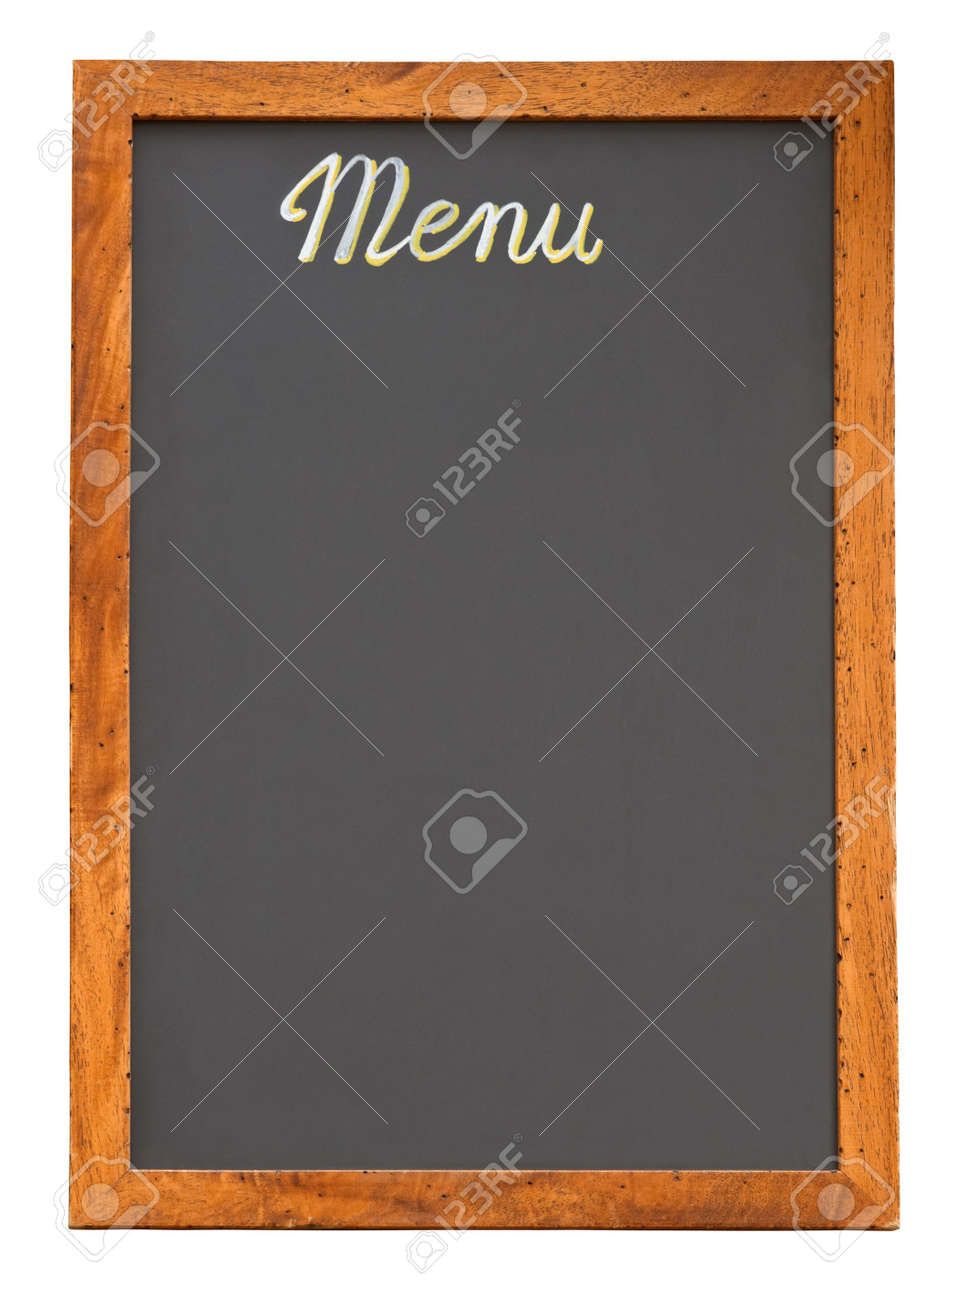 Empty restaurant menu chalkboard isolated on white with clipping path Stock Photo - 3204712